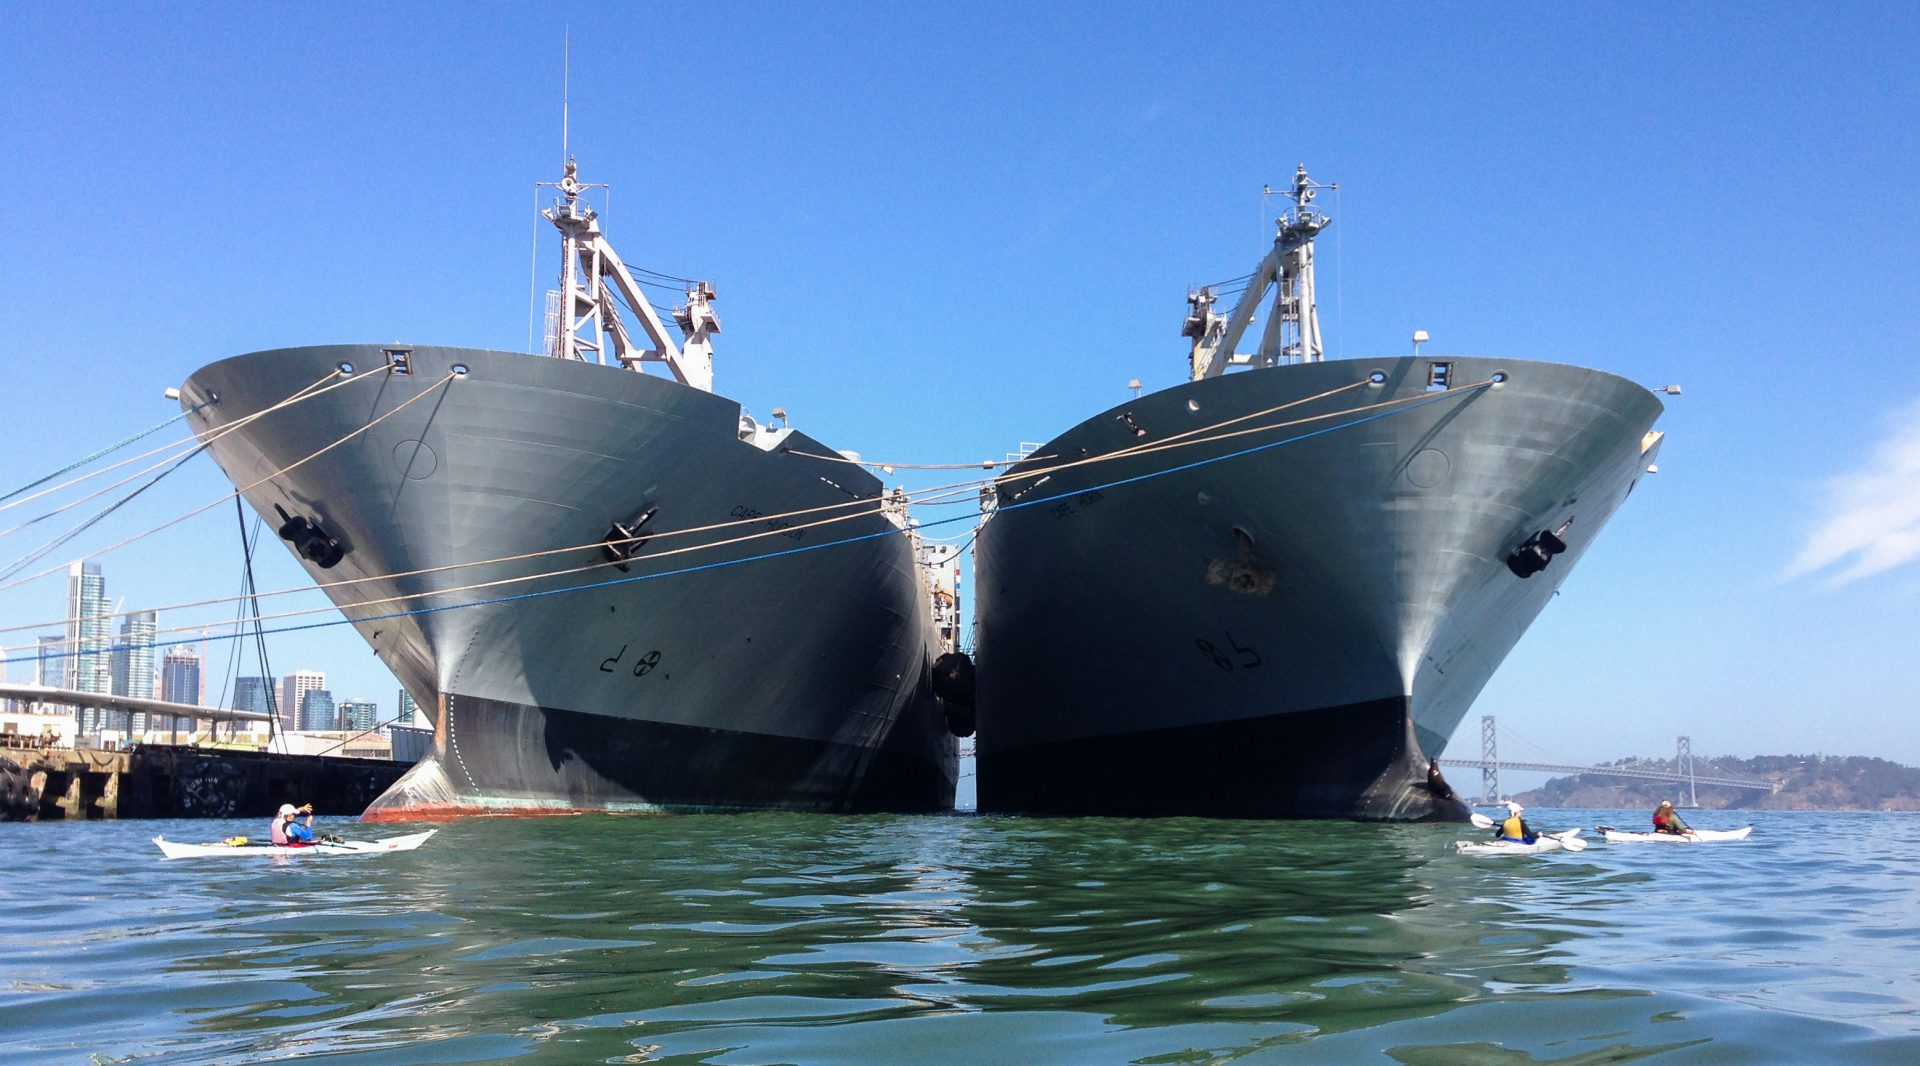 view from water of the bows of two very large ships